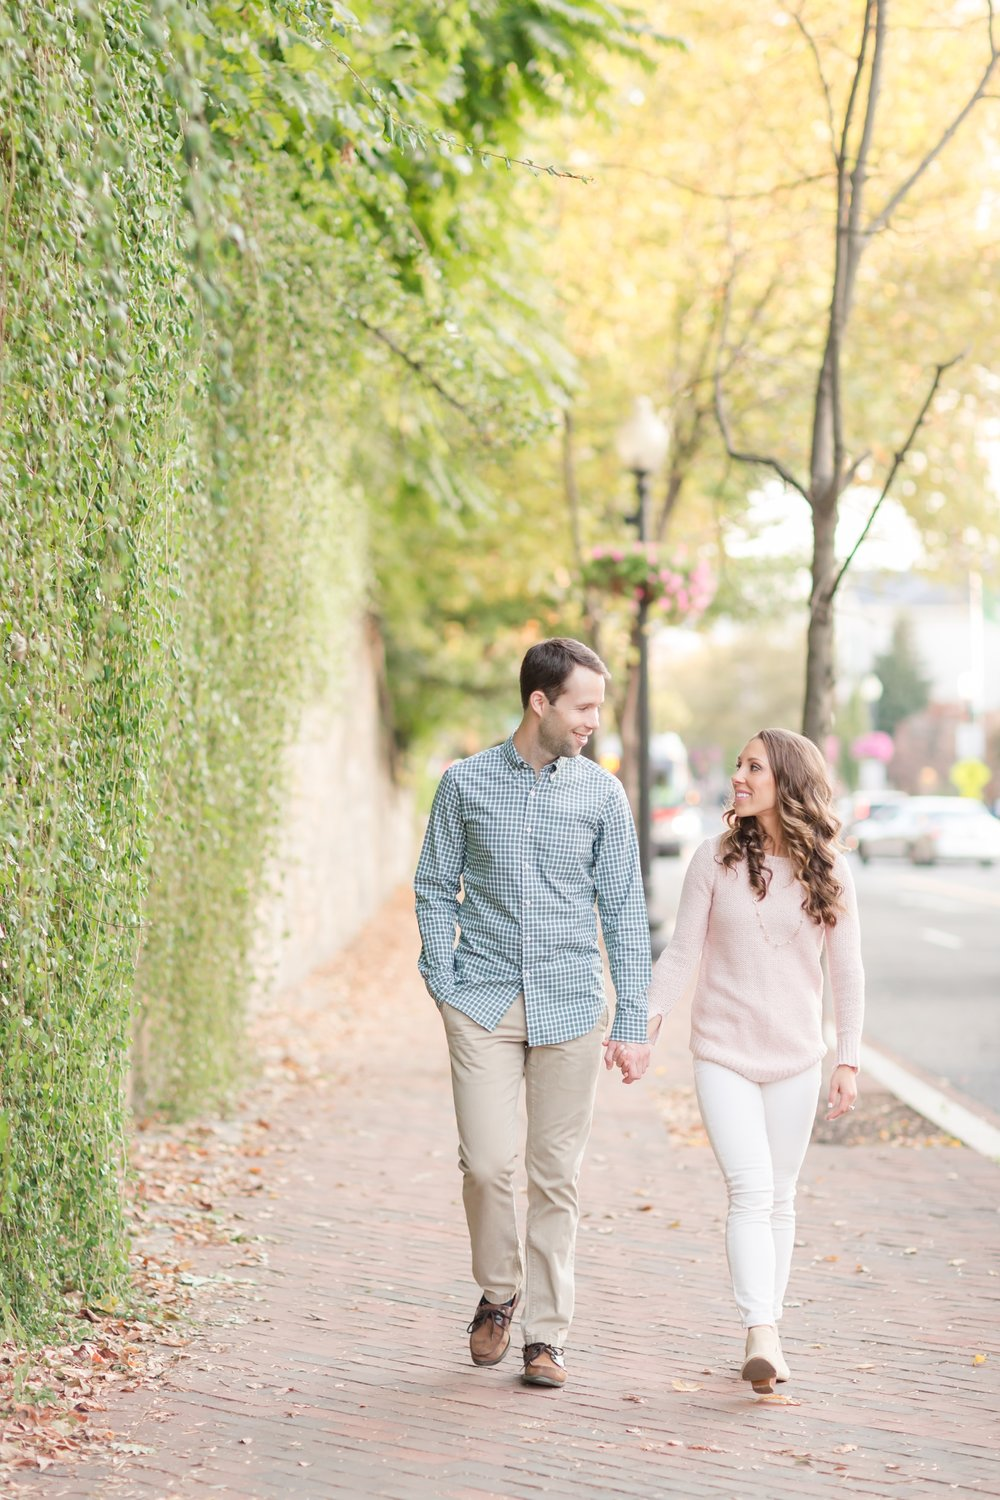 Emily Schroeder & Brian Malat Engagement-225_Georgetown-DC-engagement-virginia-engagement-photographer-anna-grace-photography-photo.jpg